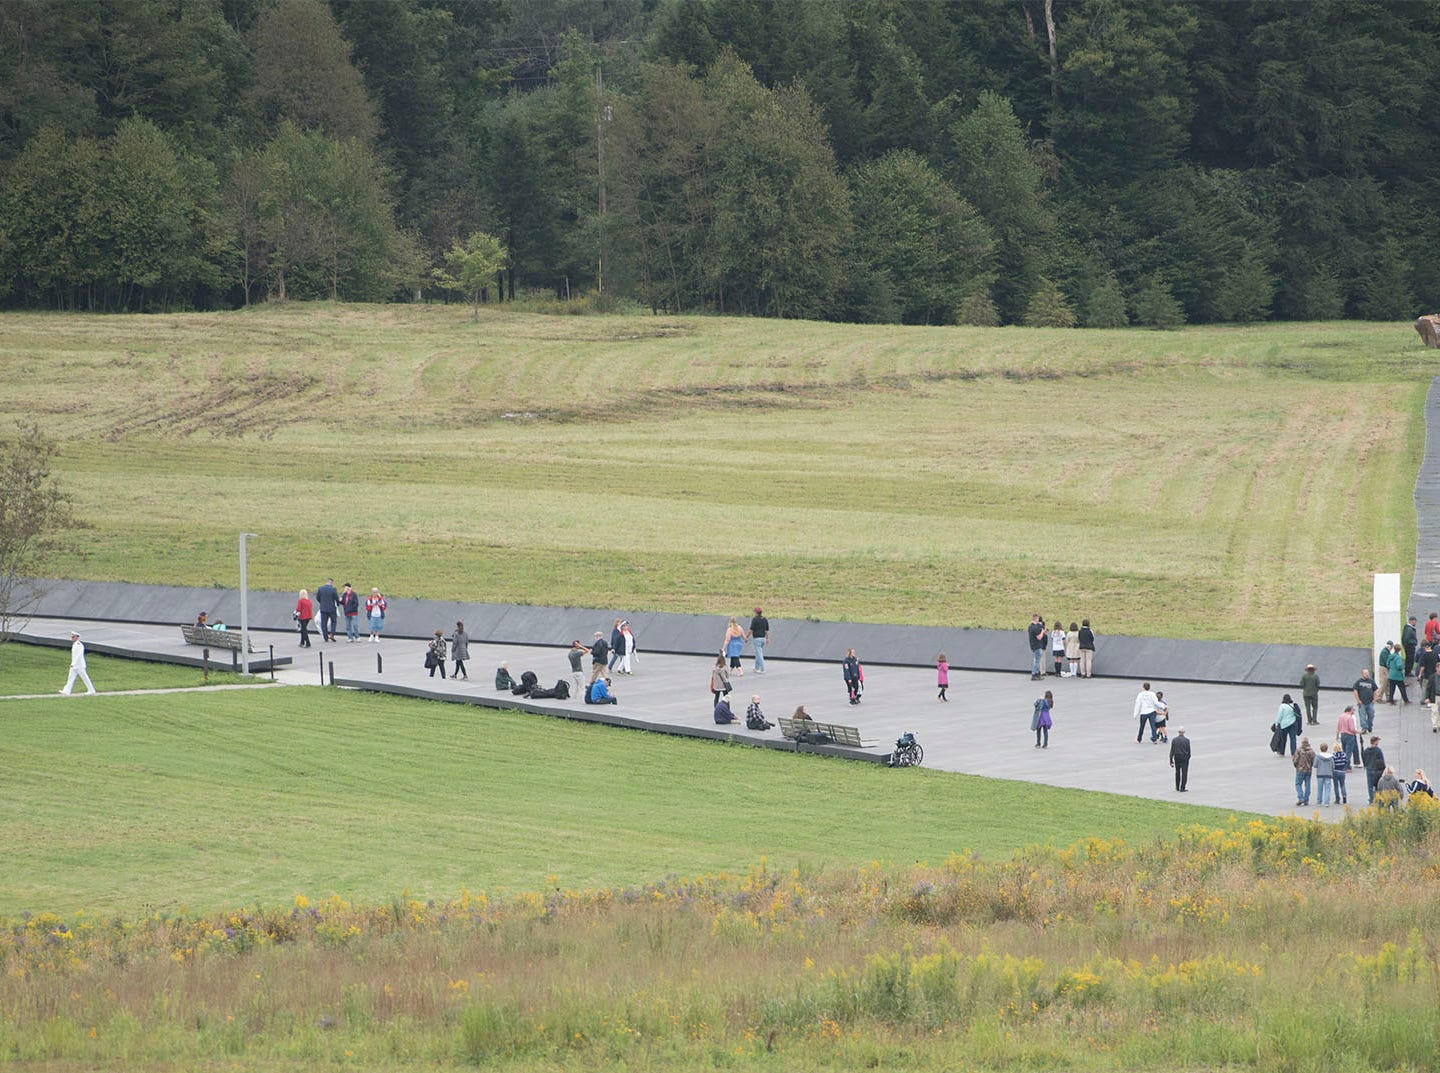 The wall of names an crash site are seen from the overlook area. The Flight 93 National Memorial's 17th Annual September 11 ceremony is being held at the Memorial Plaza in Shanksville, Pa.